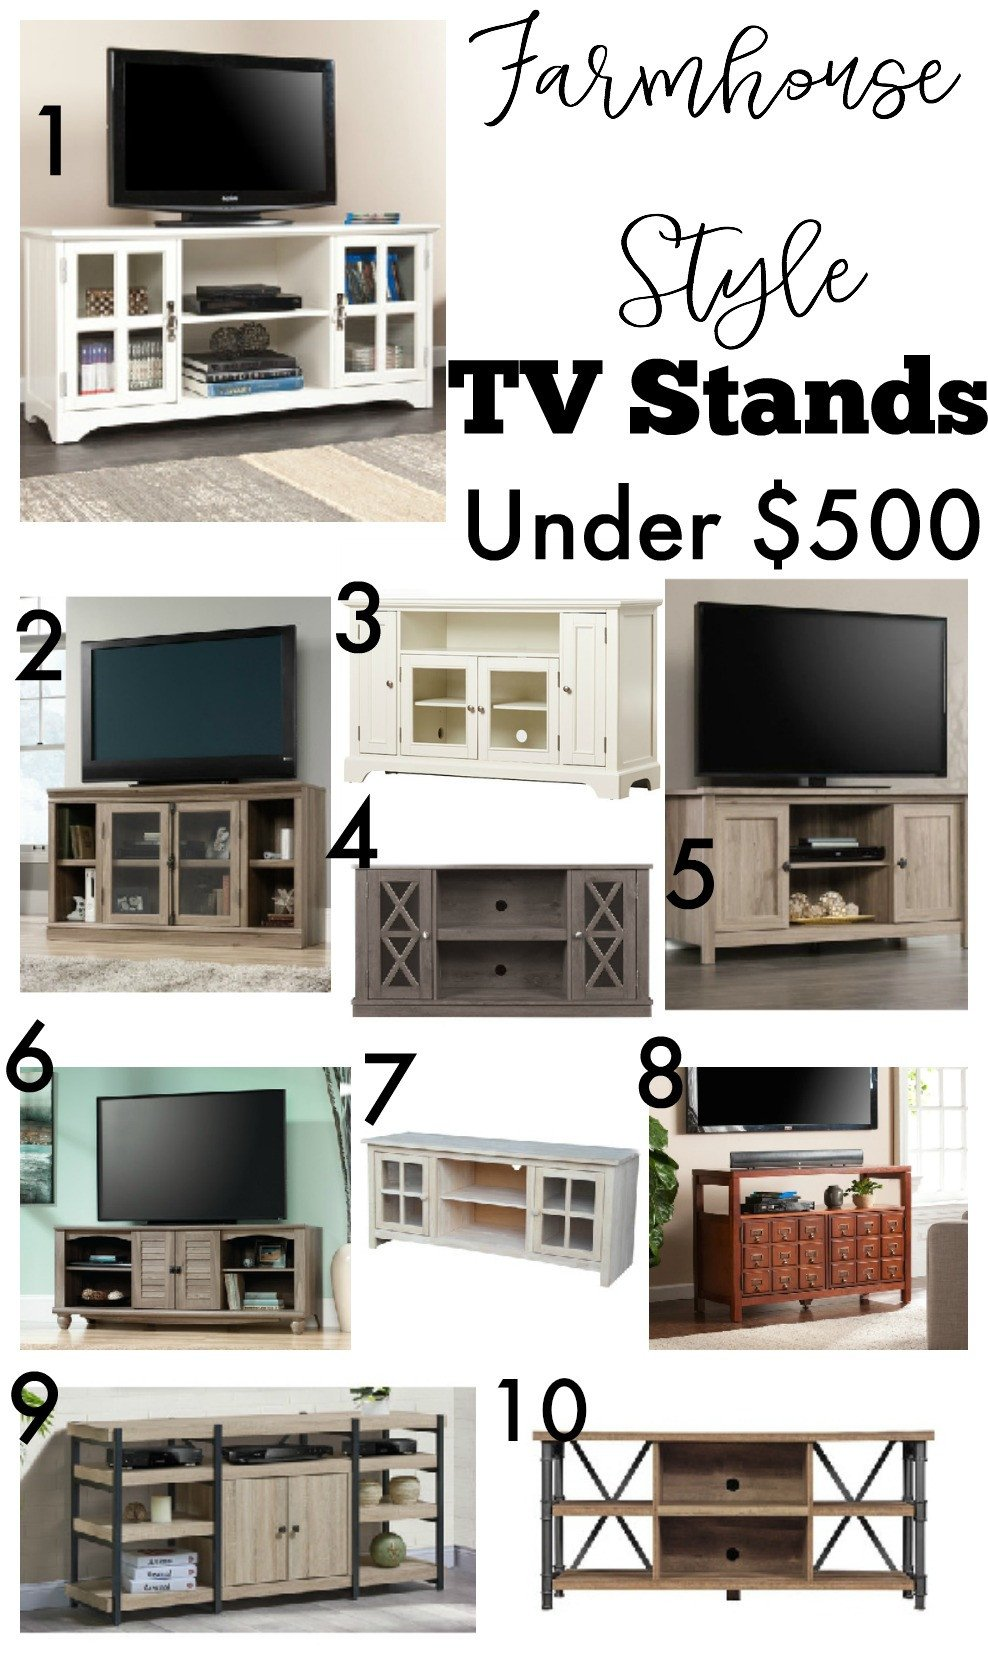 Farmhouse Tv Stand Design Ideas and Decor Fresh Transitioning to Farmhouse Style Shopping Guide